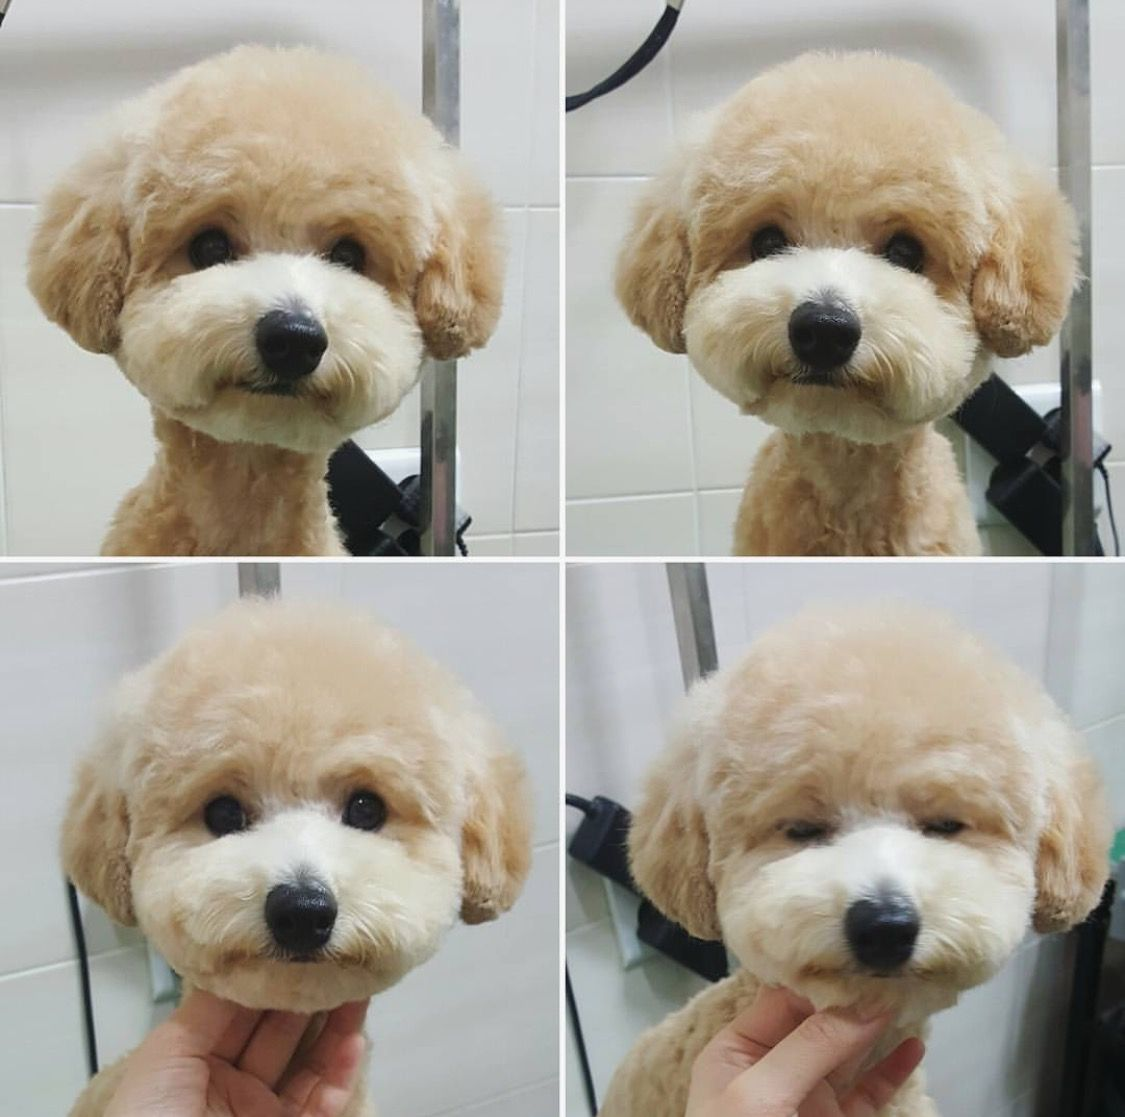 Grooming More doggie style lol Pinterest Dog Grooming Poodle